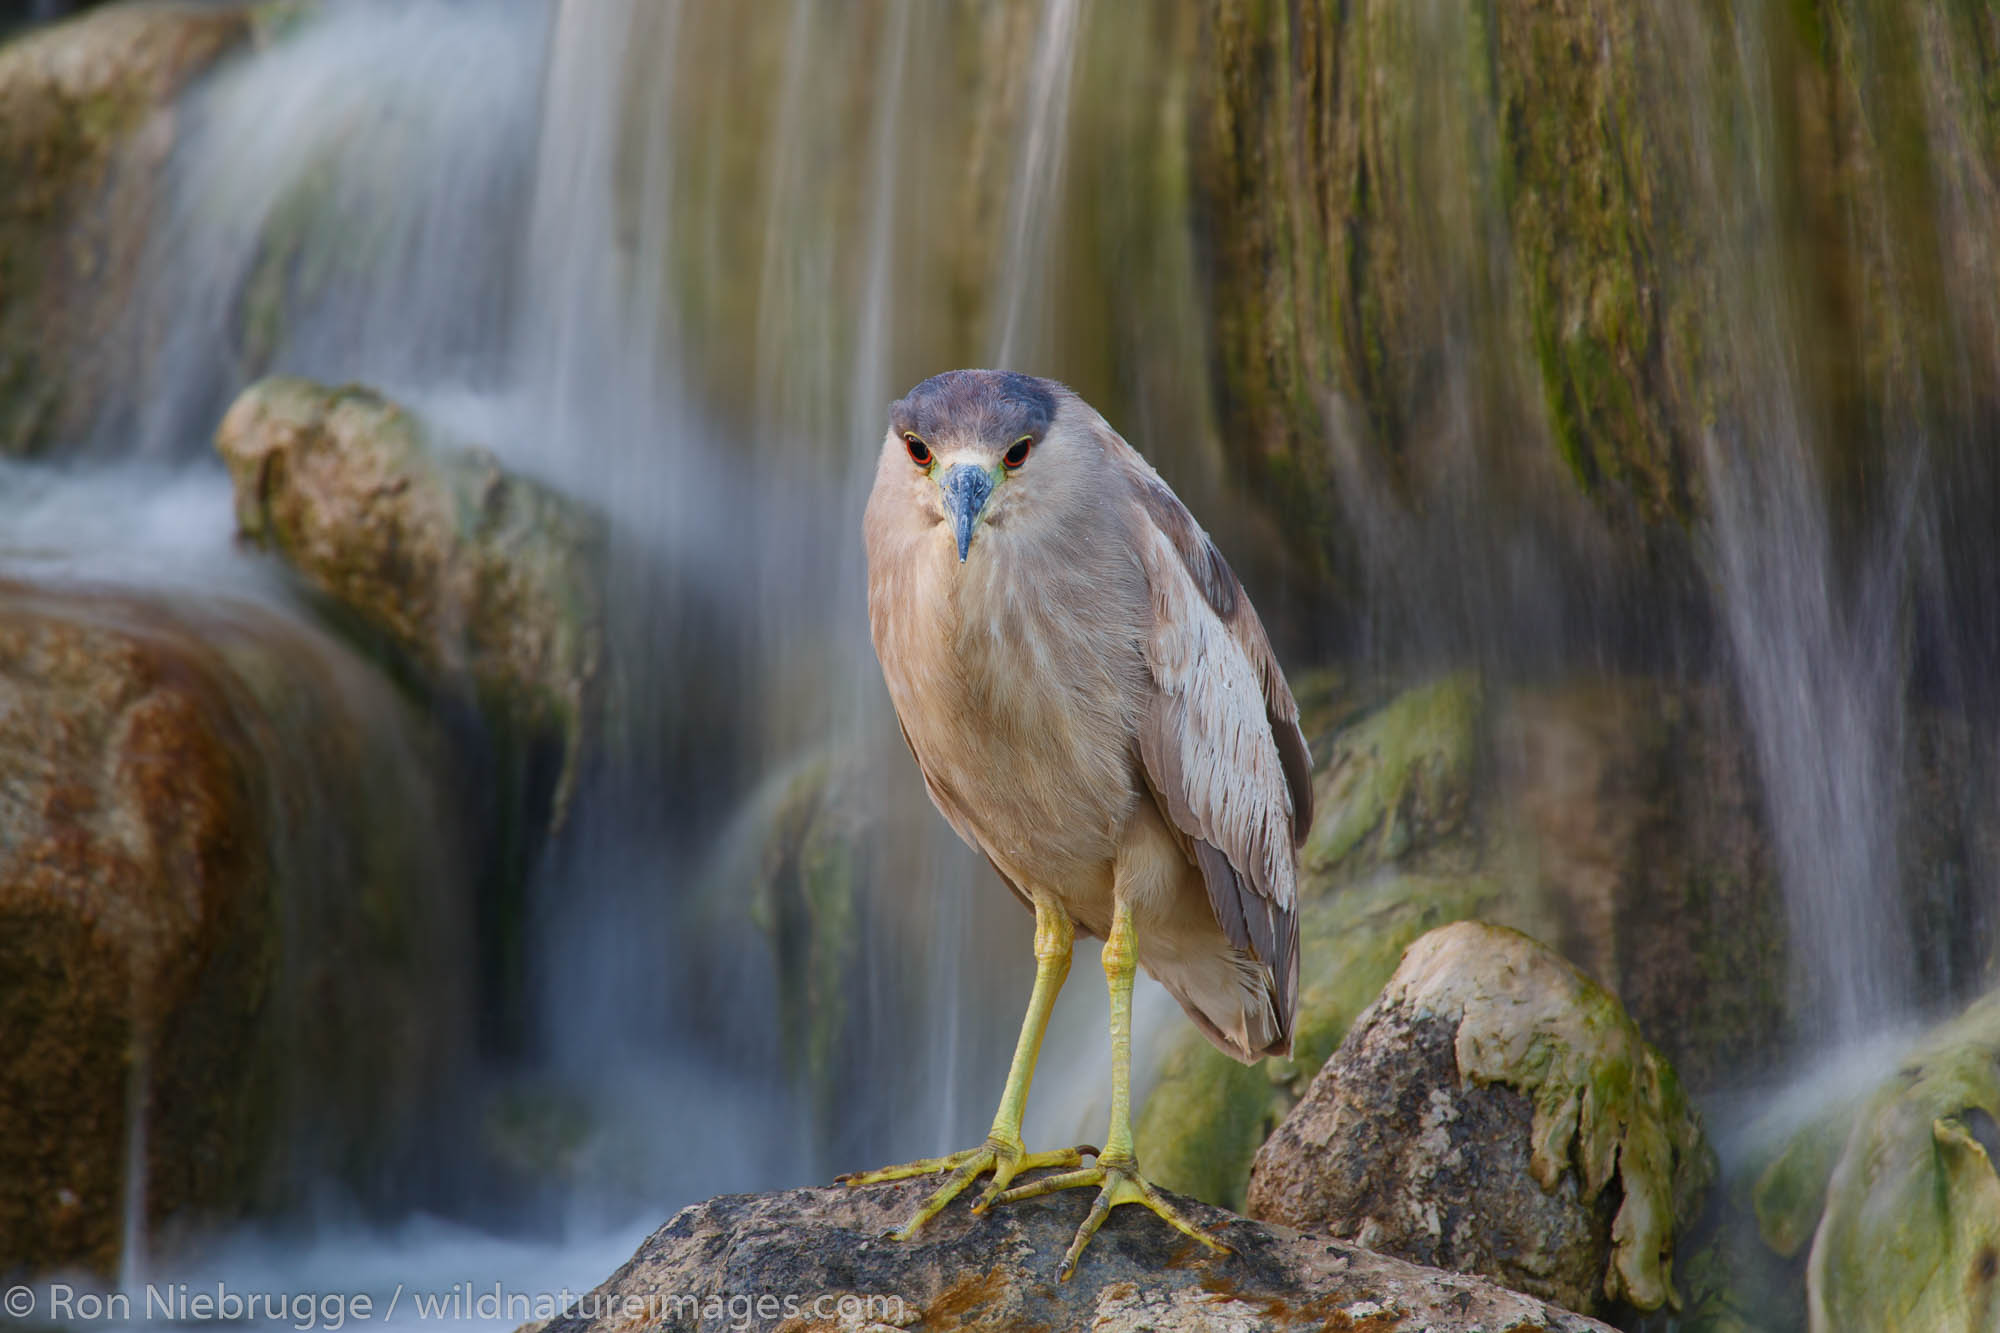 black-crowned night heron (Nycticorax nycticorax), Borrego Springs, California.